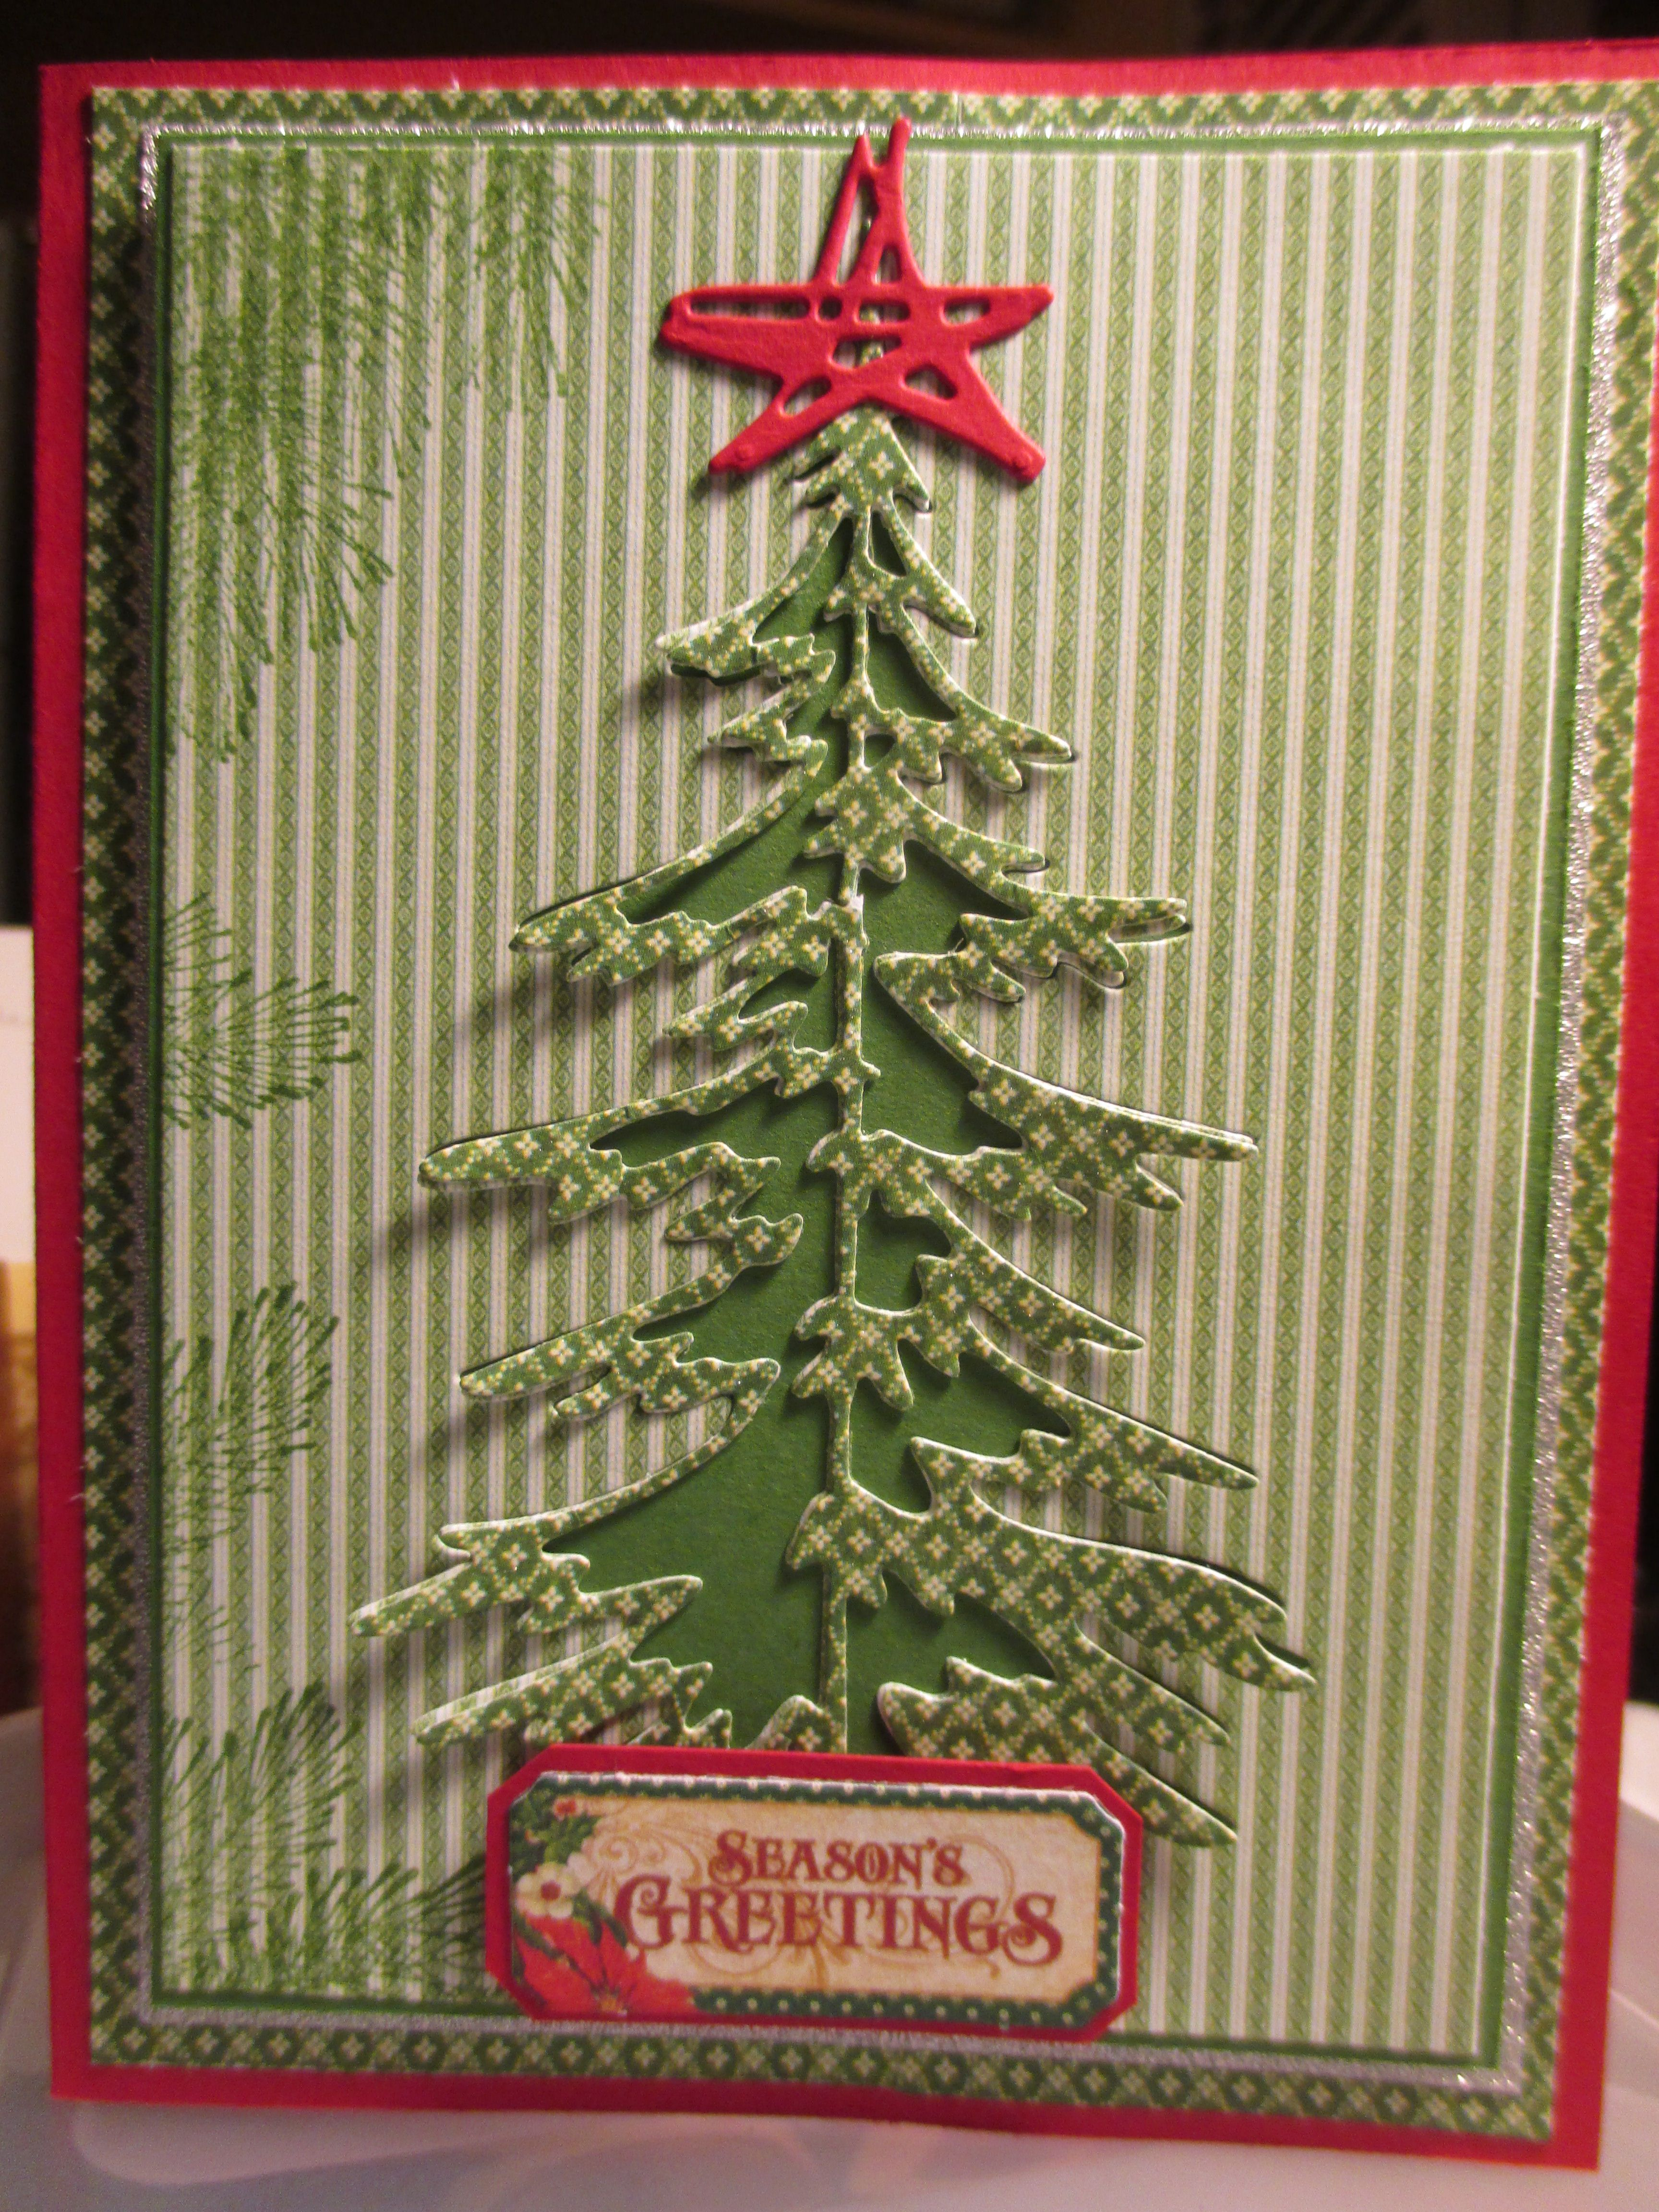 Tim Holtz Woodlands Tree Die Graphic 45 Papers Greeting 2016 Christmas Cards Handmade Christmas Holiday Cards Christmas Tree Cards